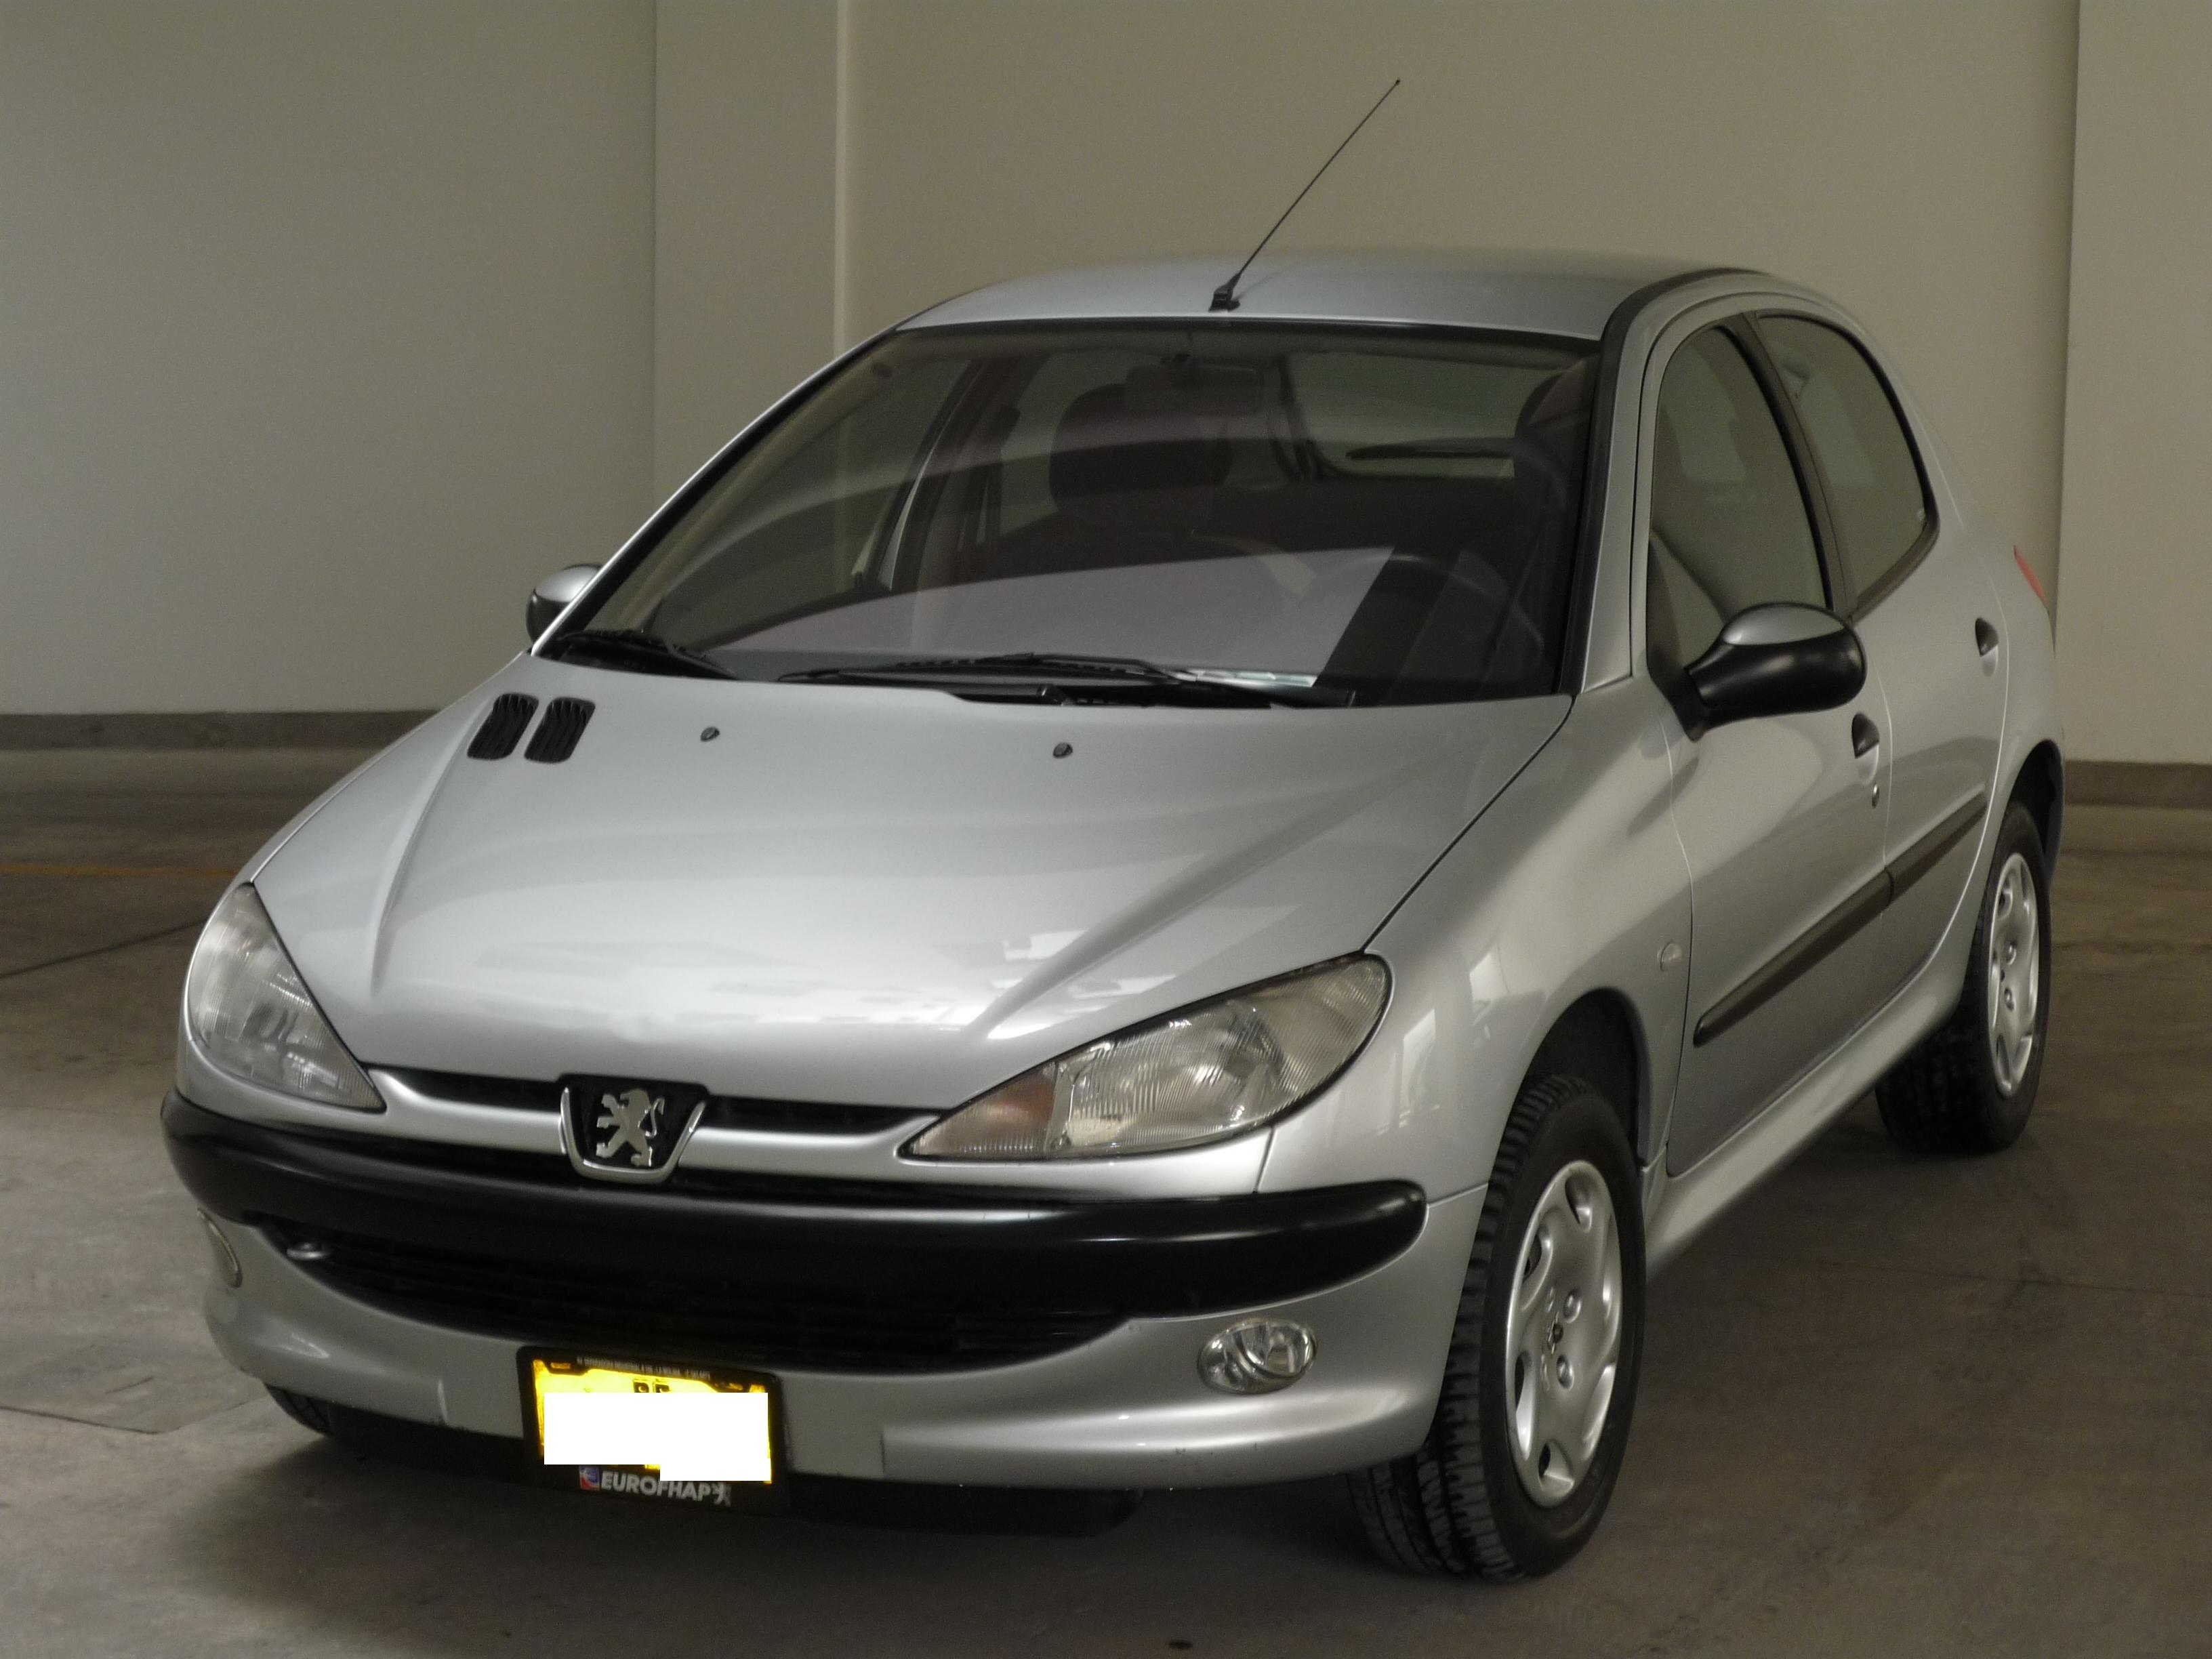 2003 peugeot 206 photos informations articles. Black Bedroom Furniture Sets. Home Design Ideas